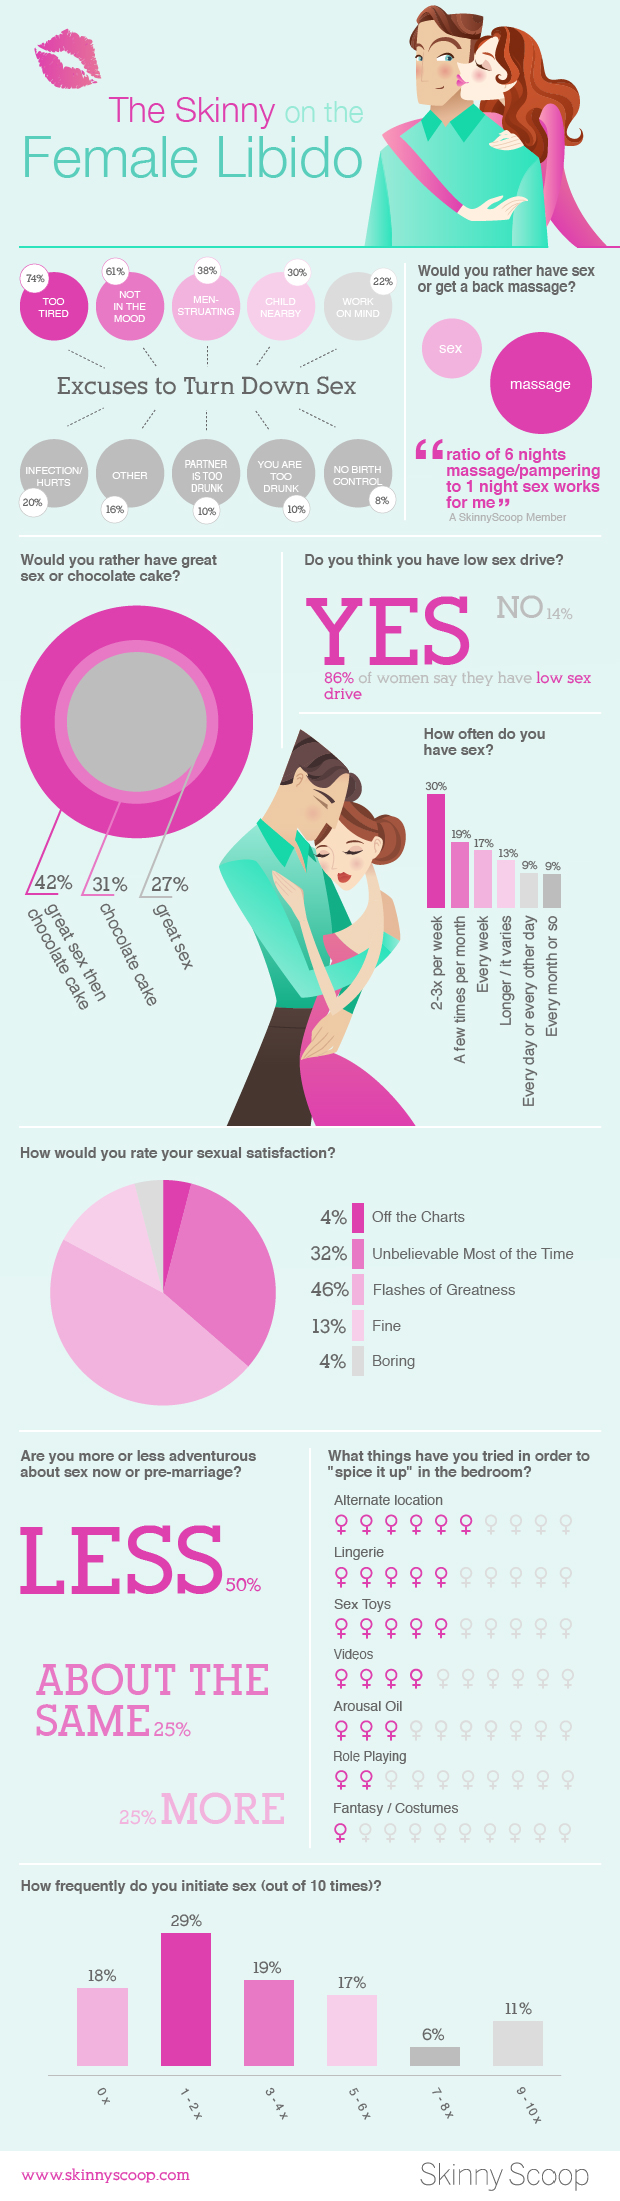 Skinny On The Female Libido, An Infographic